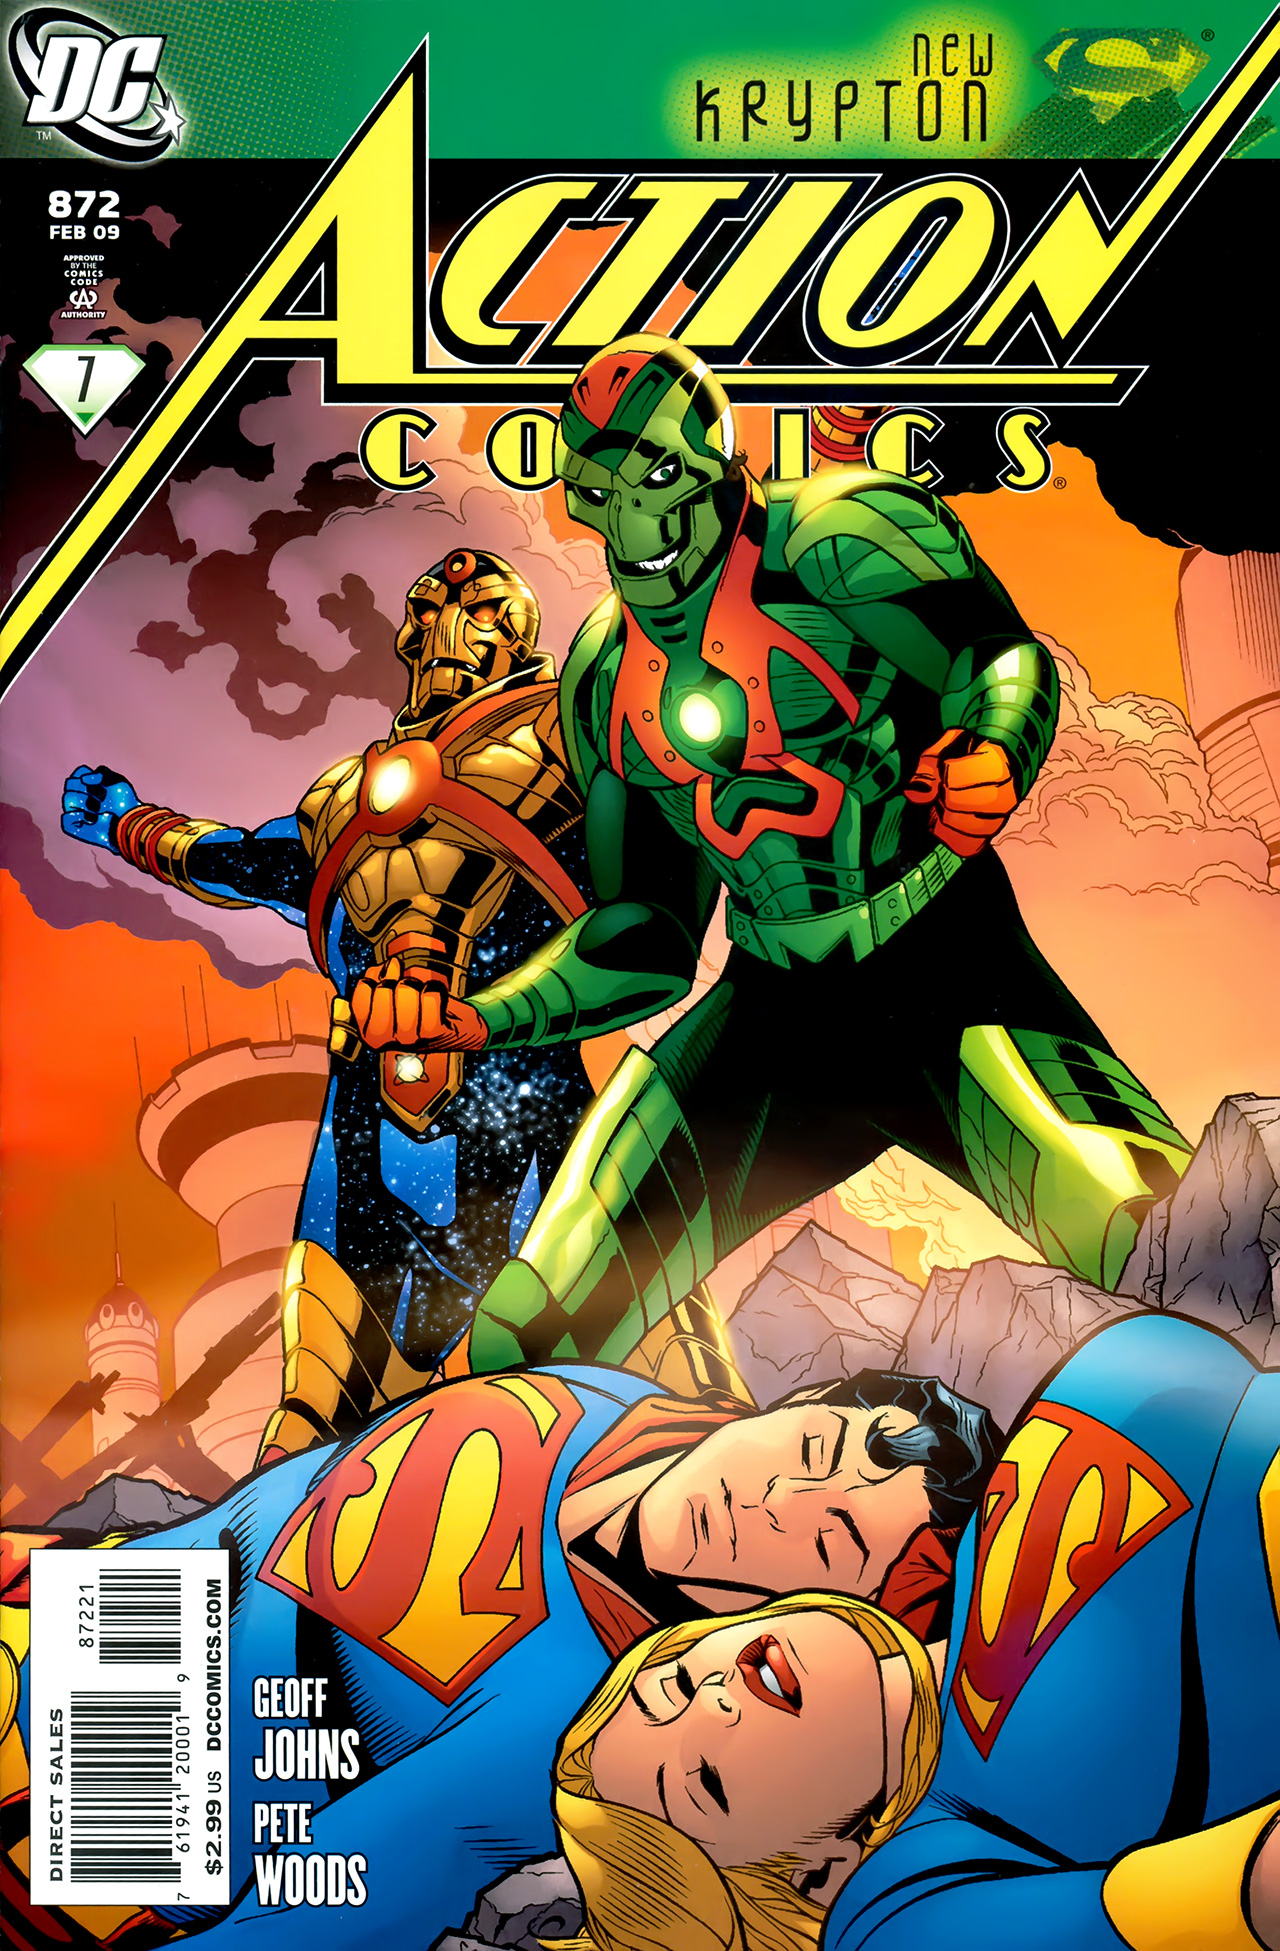 Read online Action Comics (1938) comic -  Issue #872 - 1